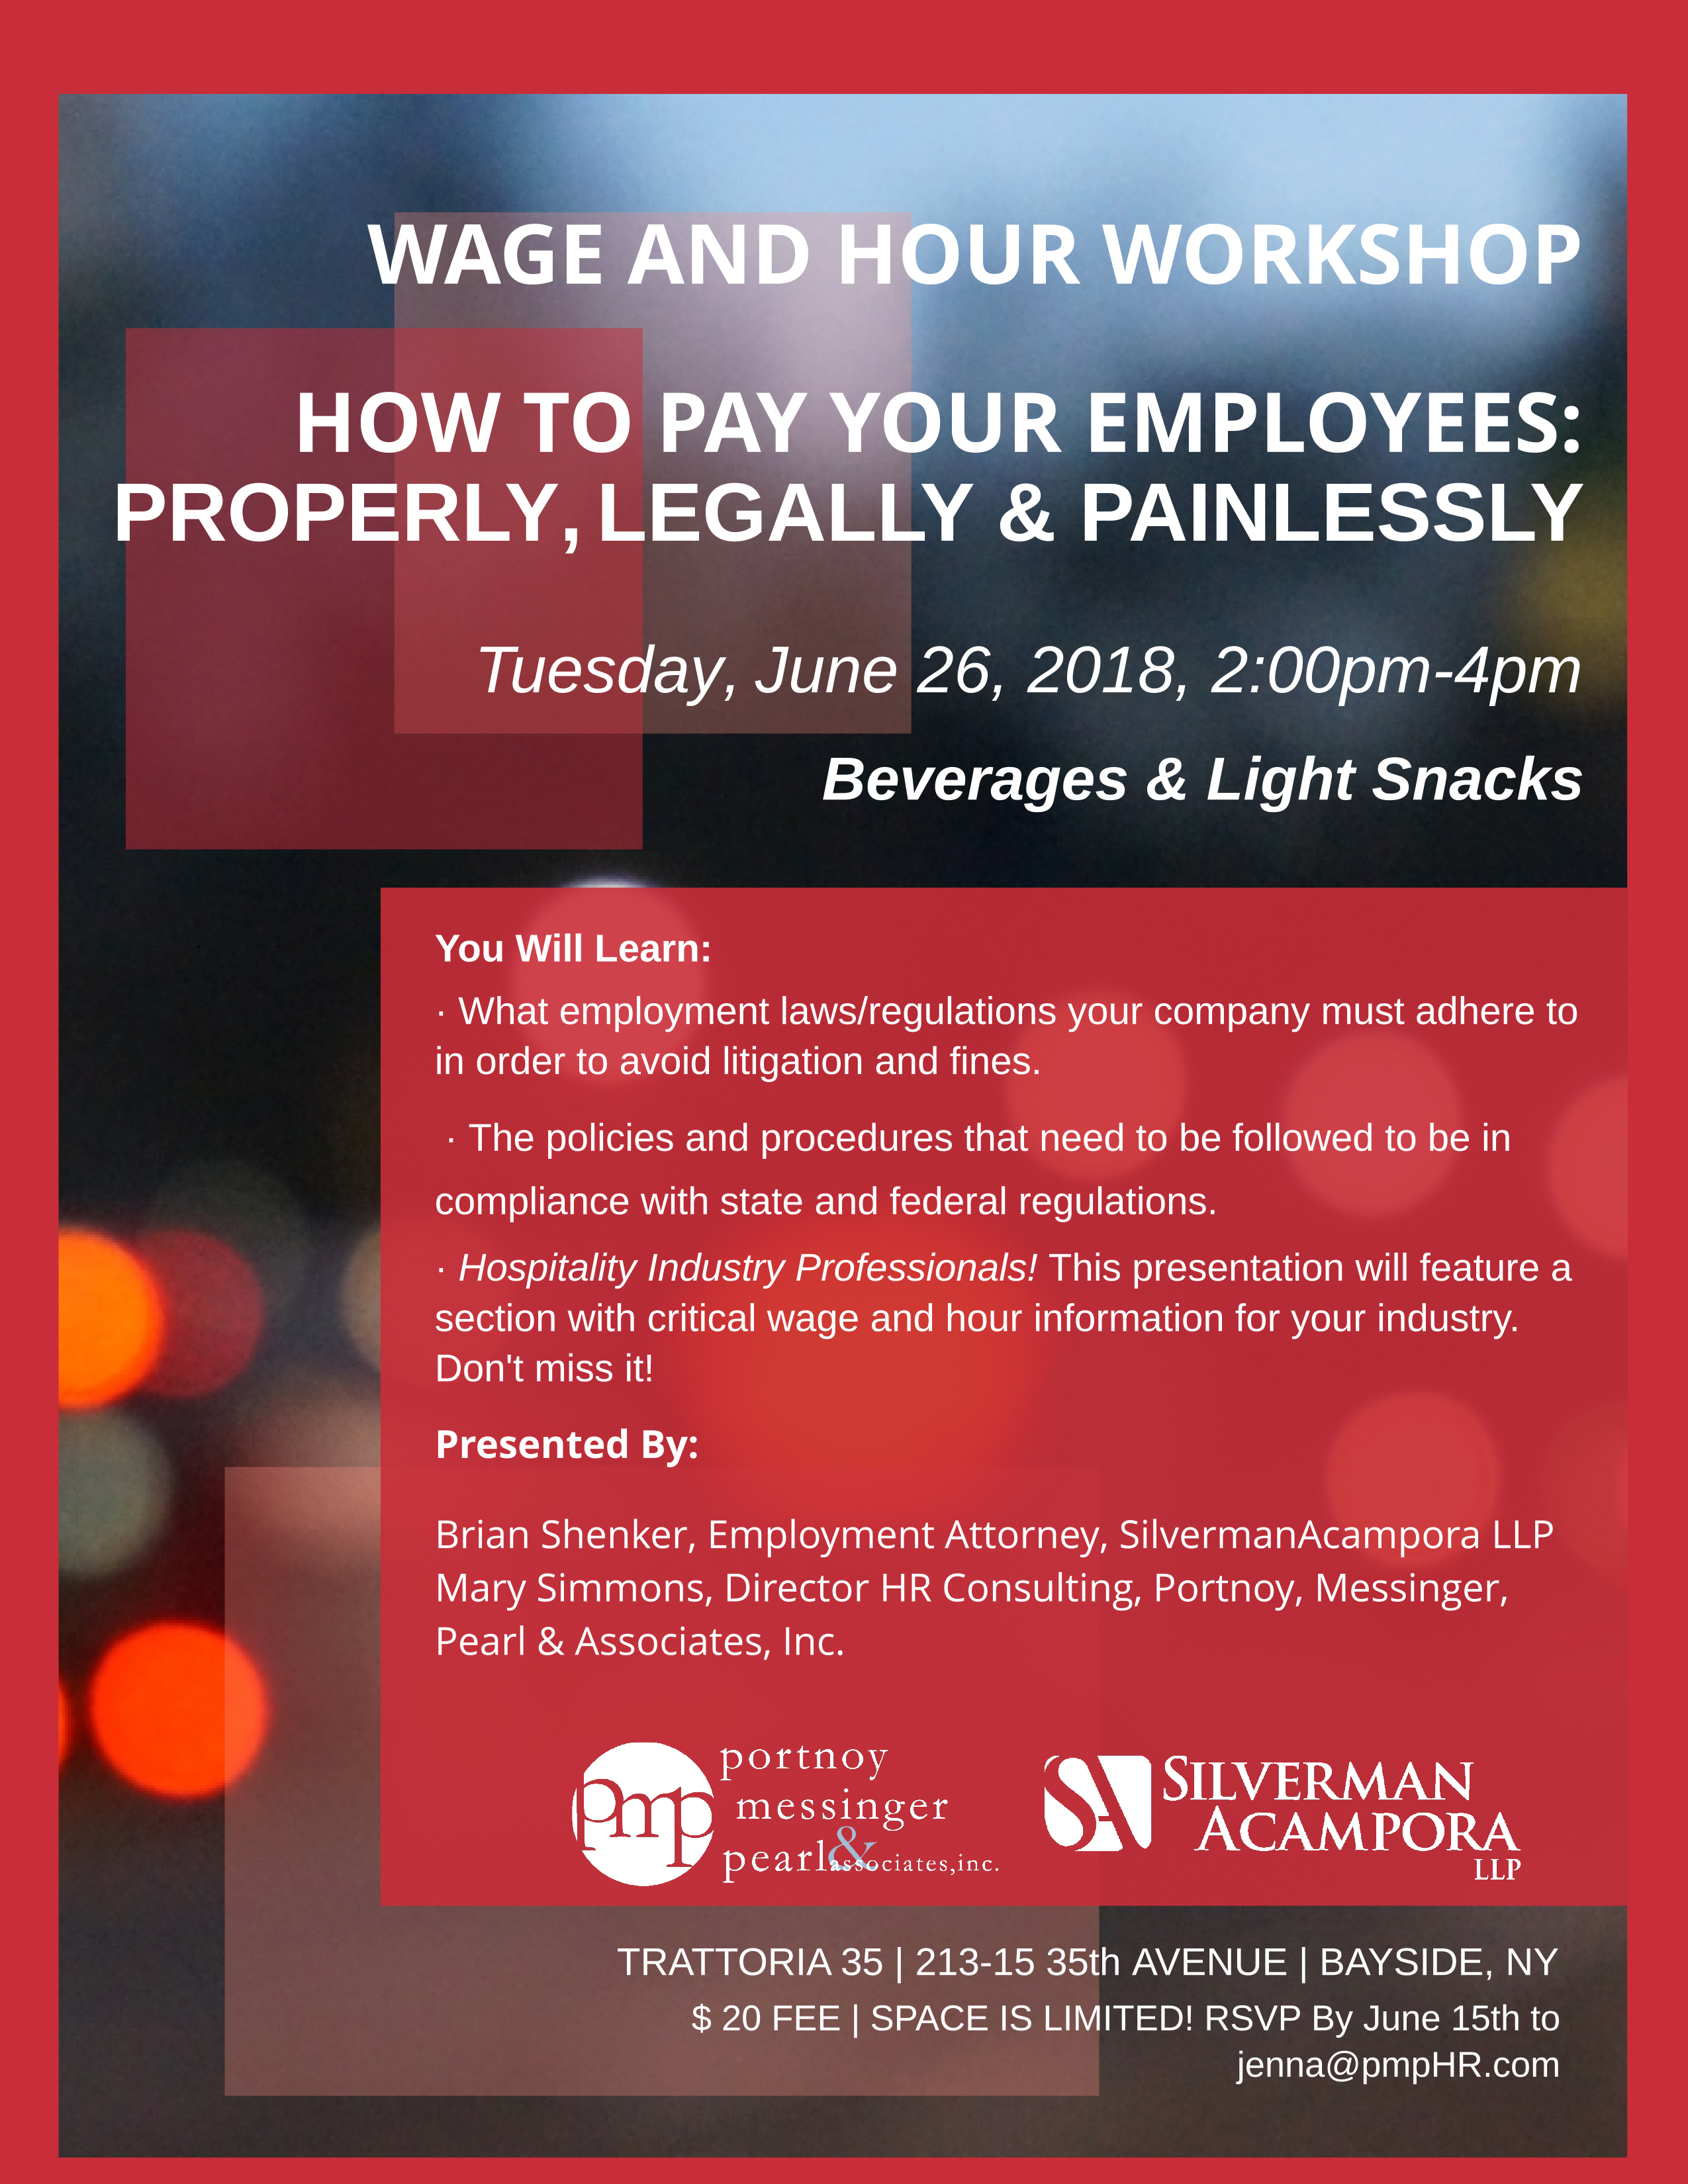 MACC News: Wage and Hour Workshop - Presented by Portnoy